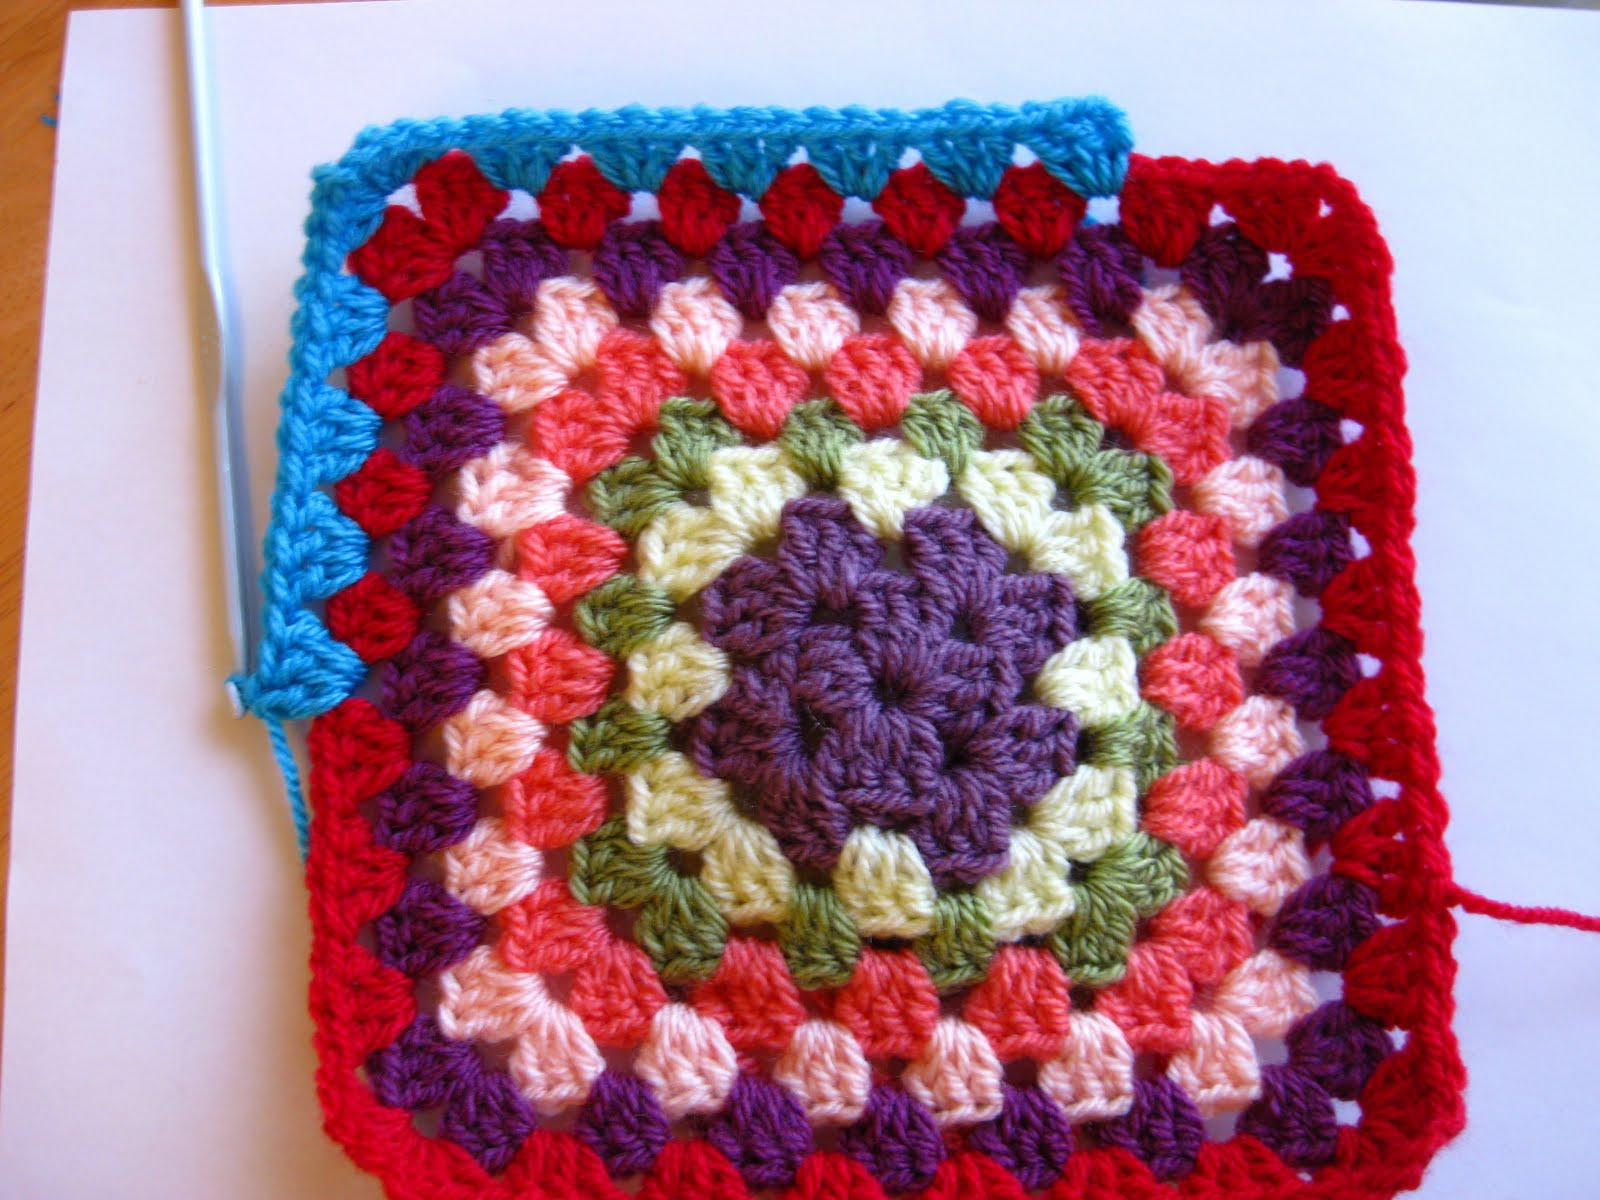 Crochet Basic Granny Square Pattern : Bunny Mummy: How to crochet a Granny Square